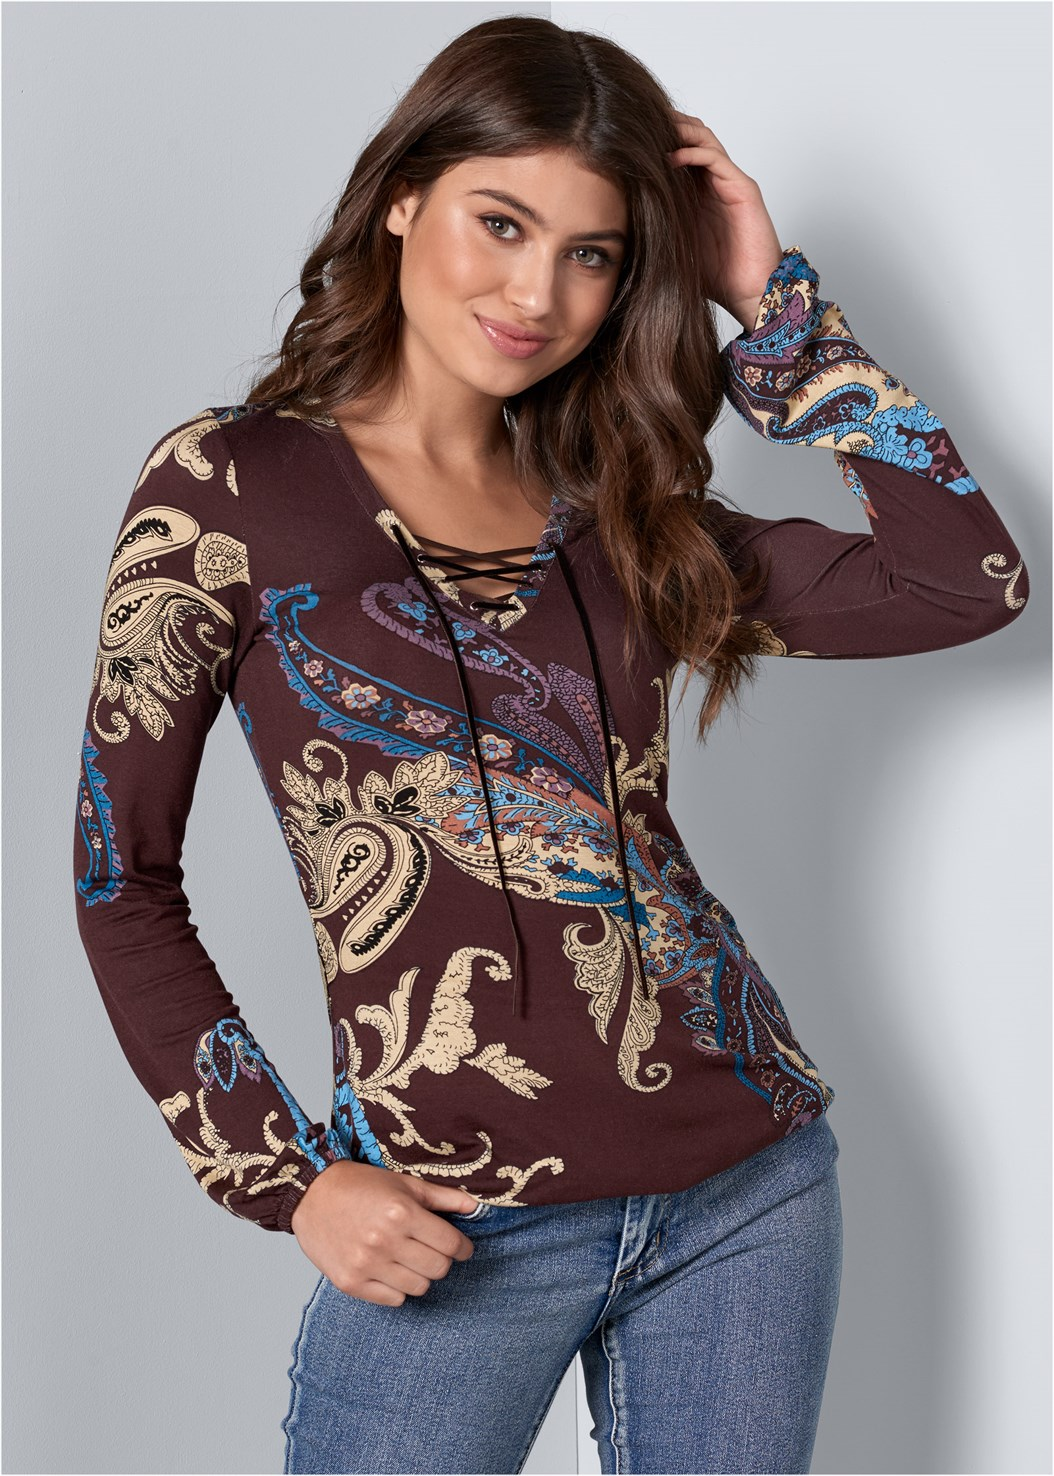 Paisley Print Top,Mid Rise Color Skinny Jeans,Buckle Riding Boots